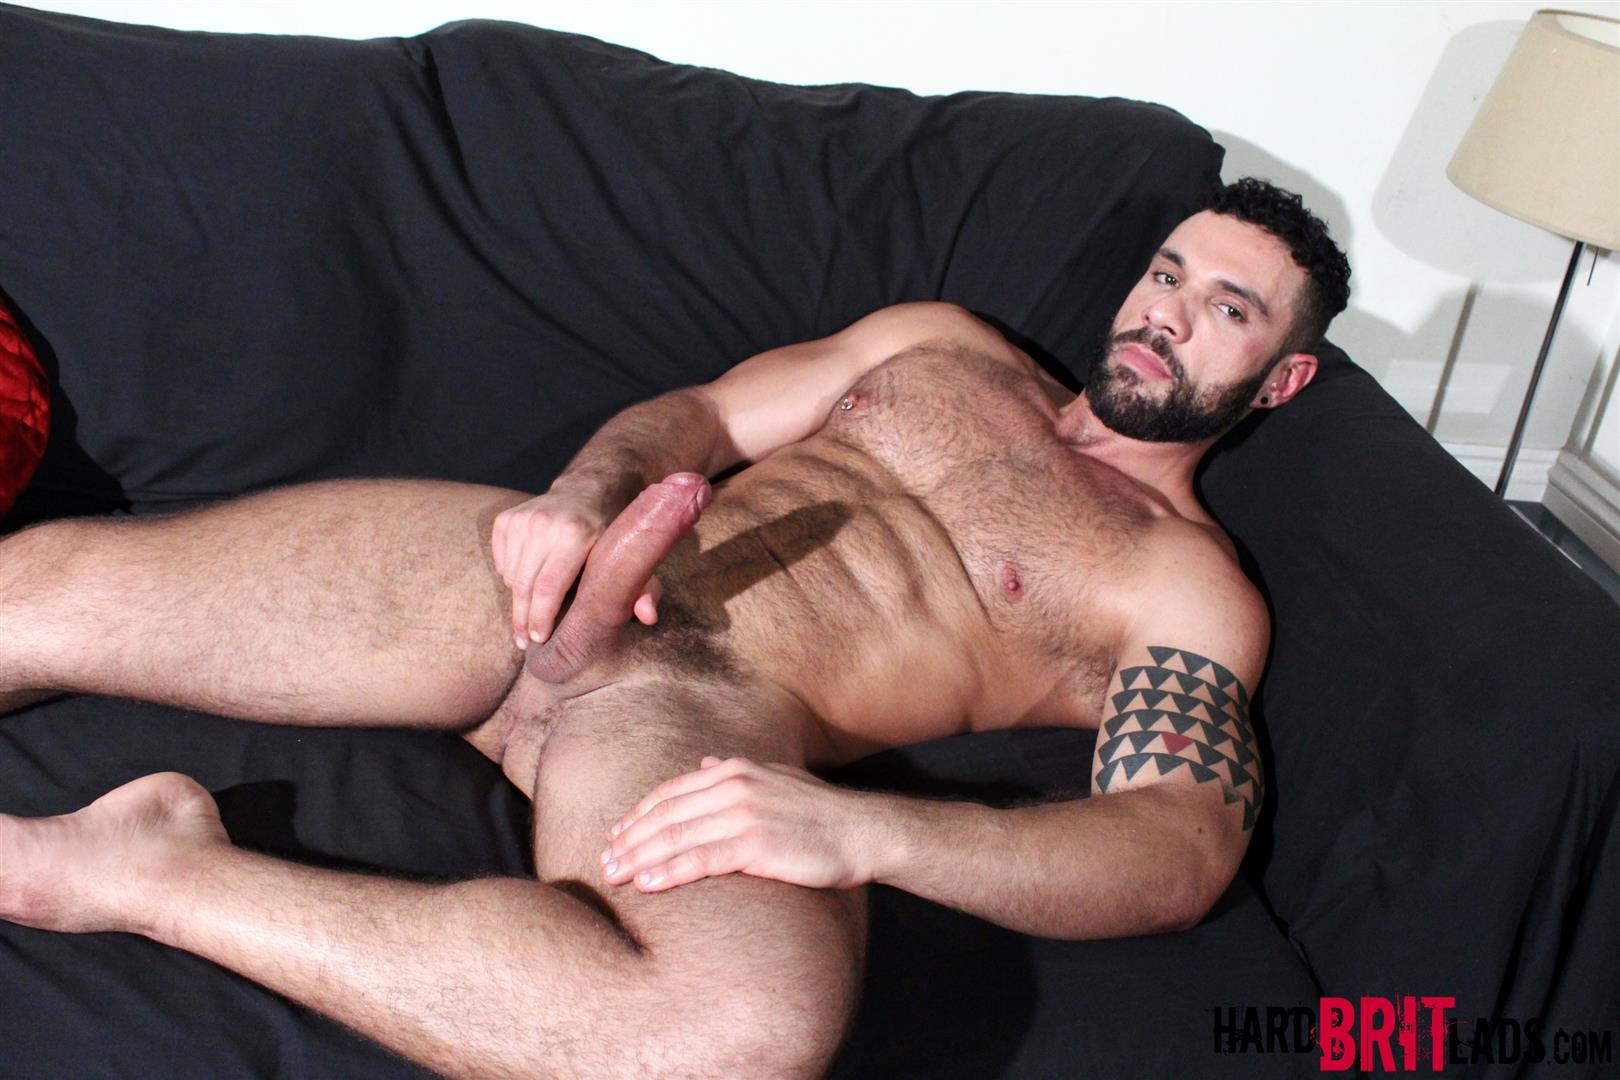 Gay rugby sex video